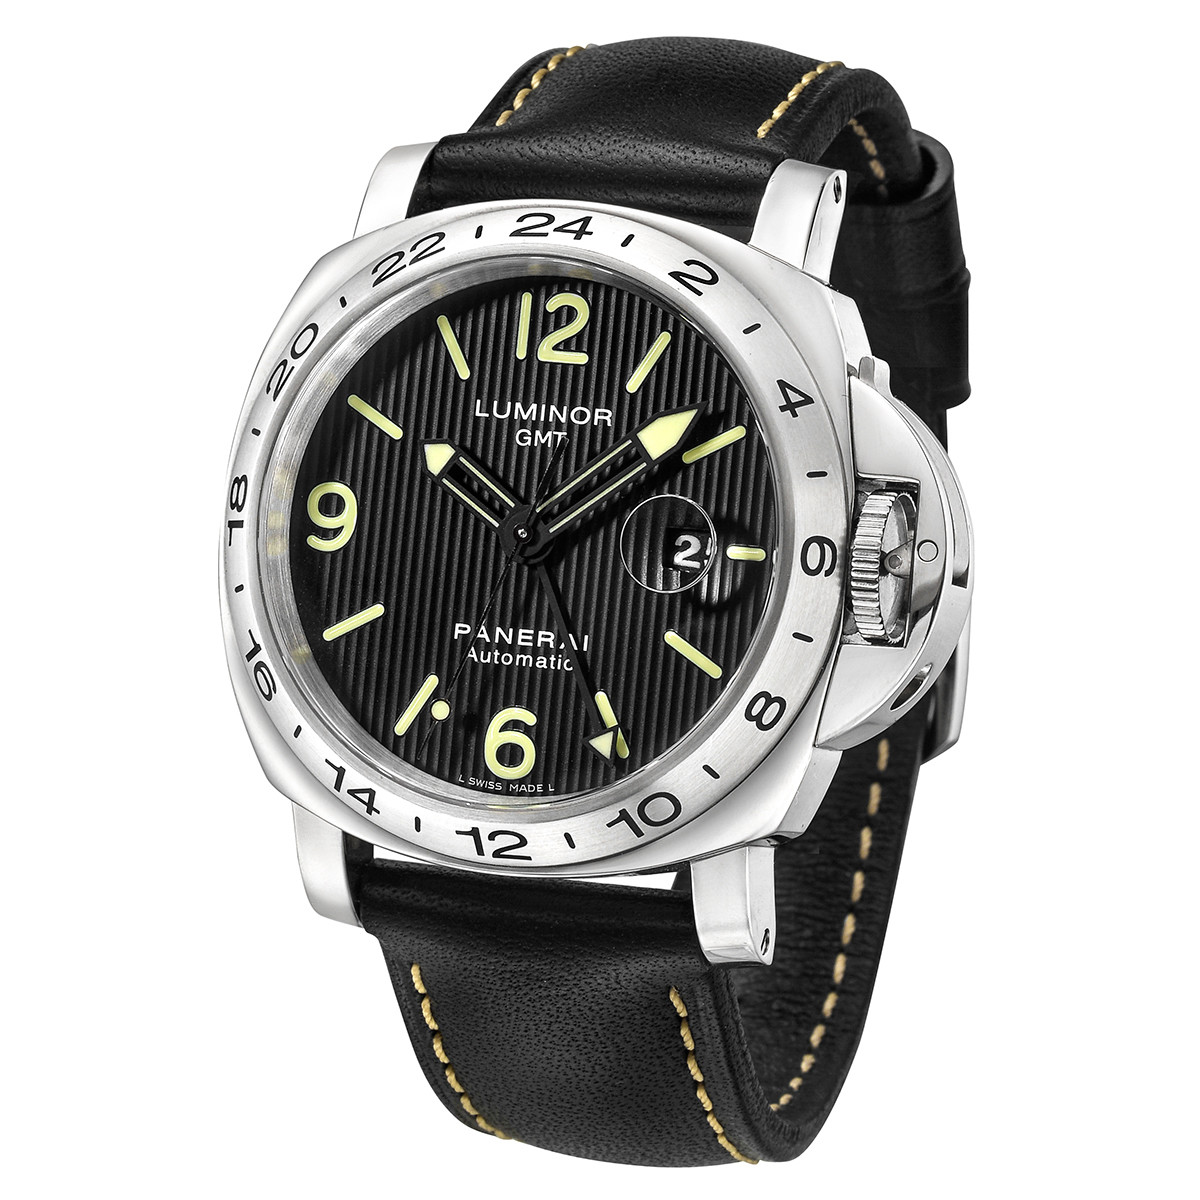 Luminor GMT Steel (PAM00029)